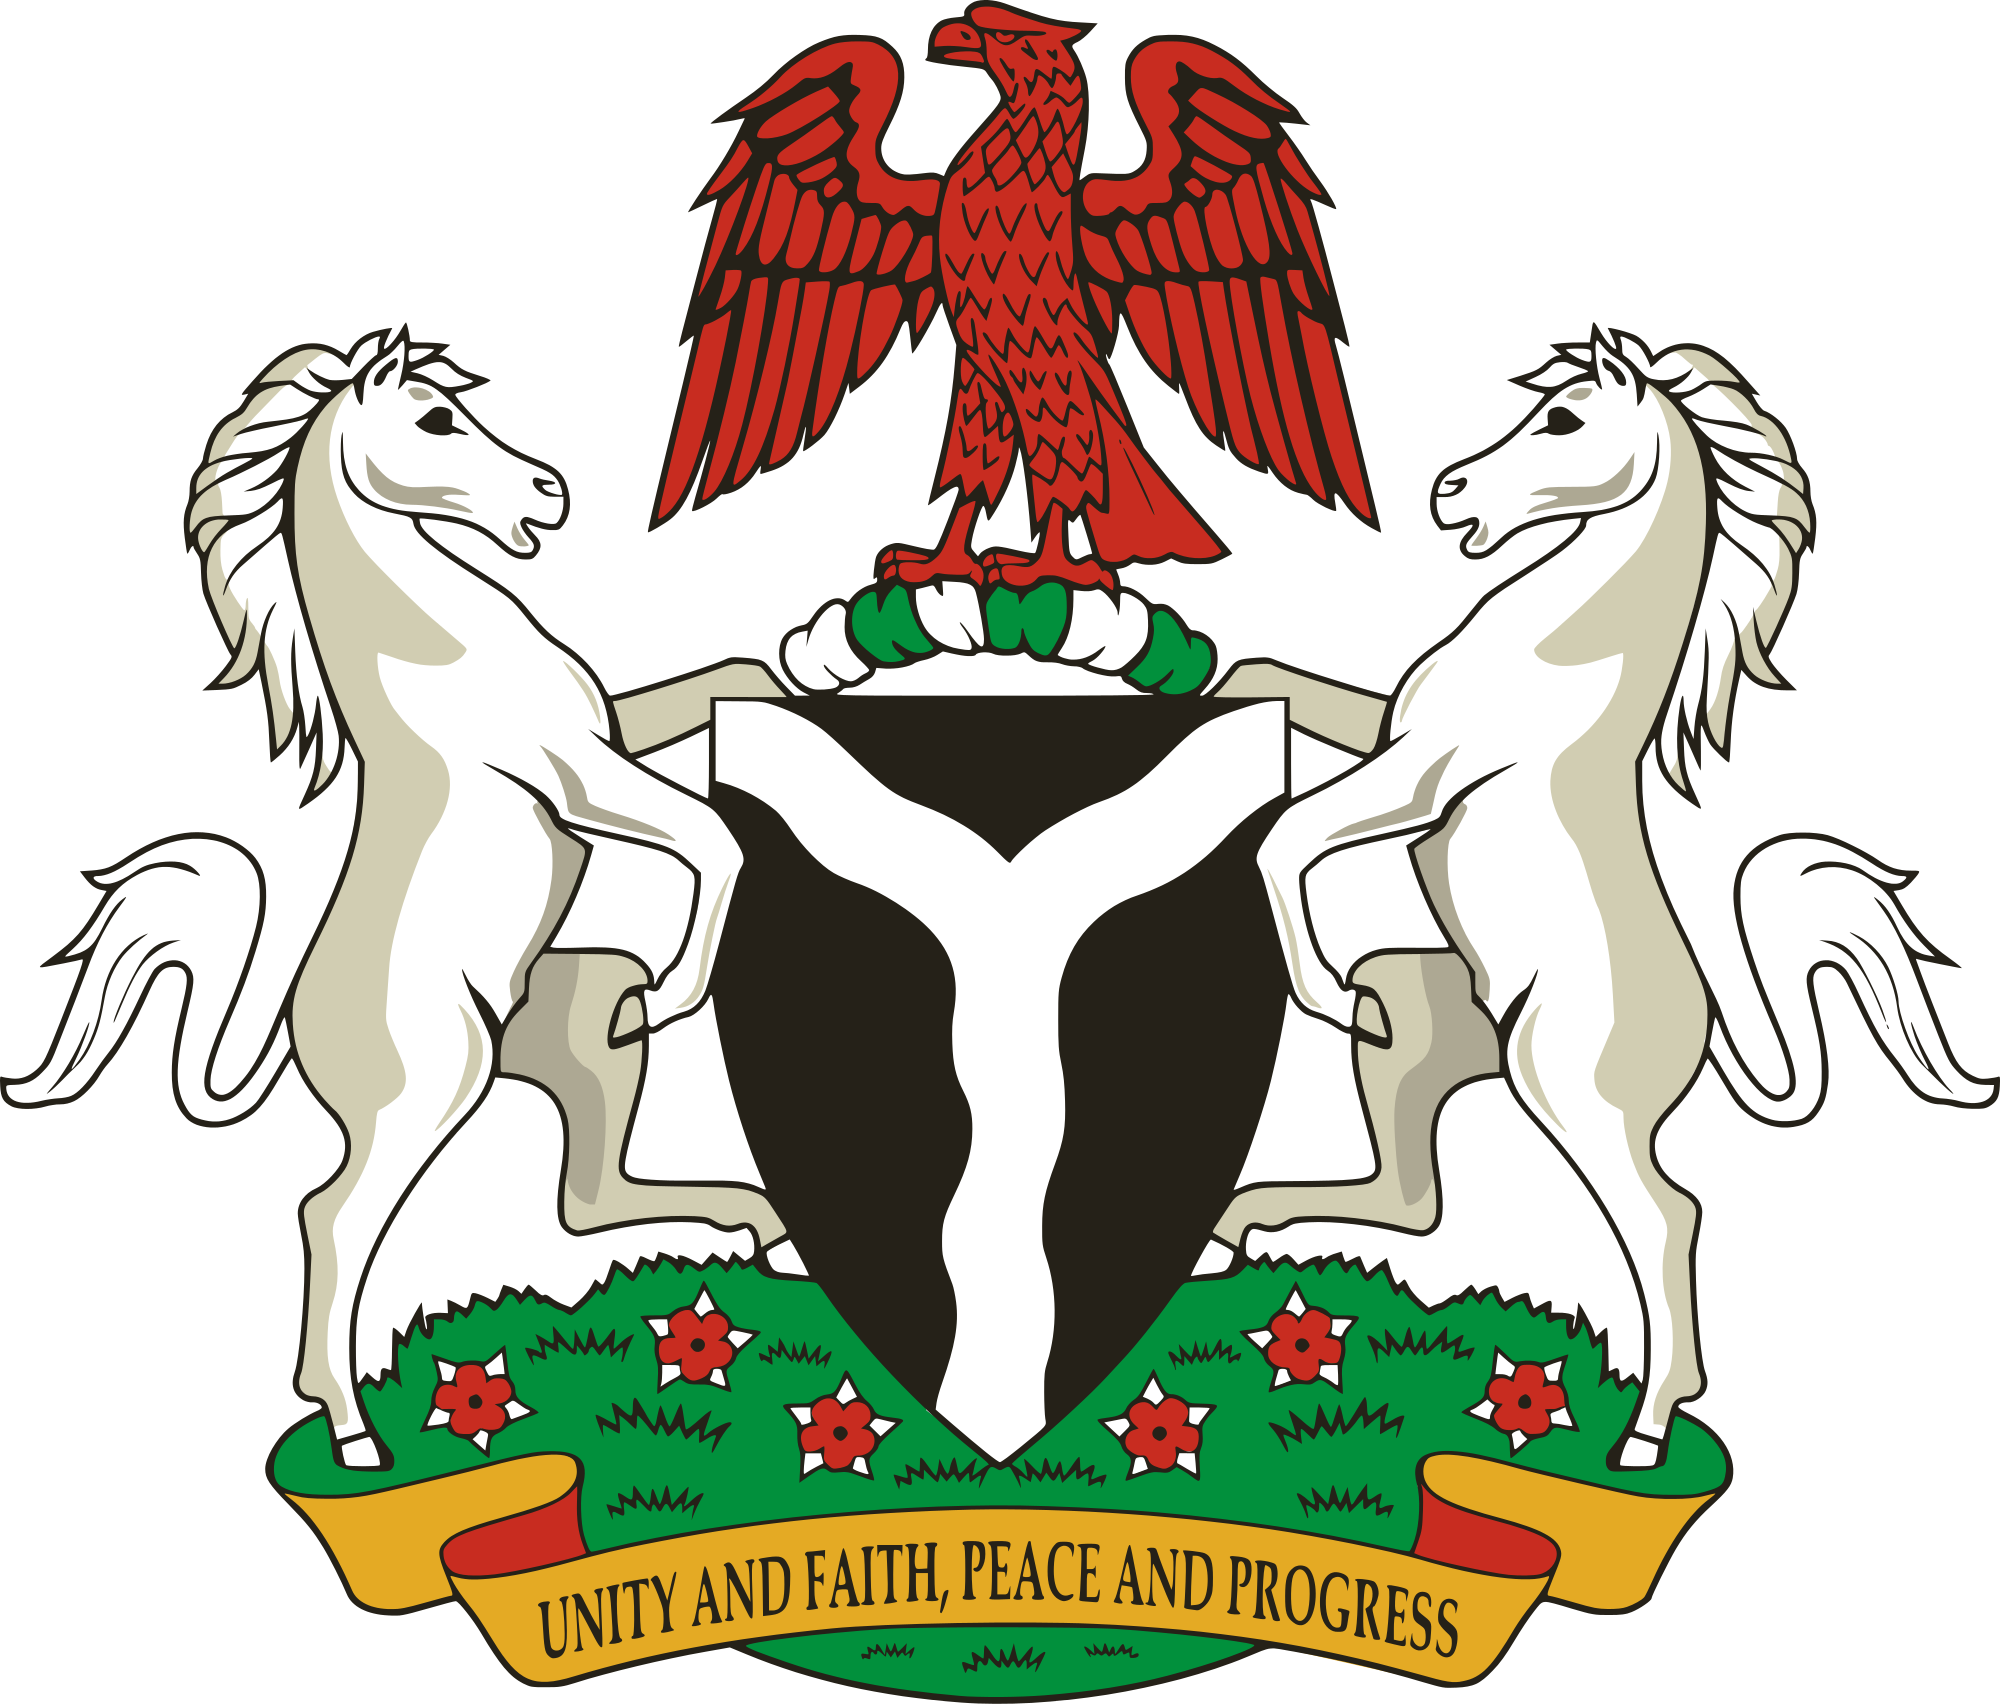 Coat Of Arms Of Nigeria Png Free Coat Of Arms Of Nigeria Png Transparent Images 75587 Pngio